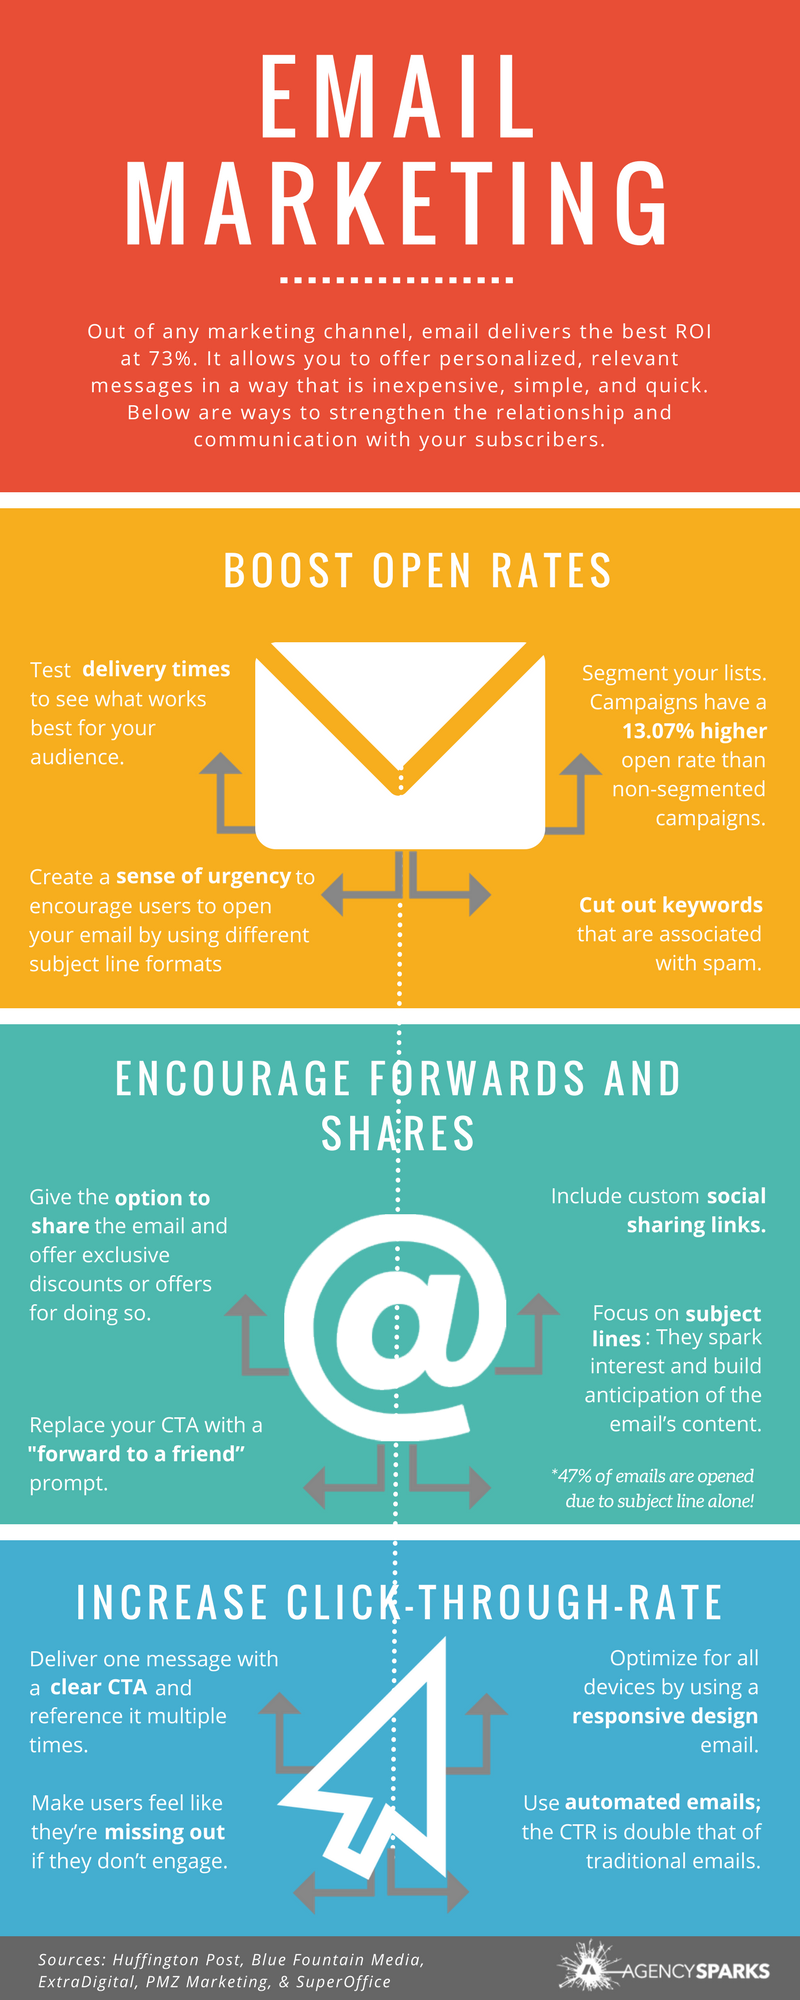 Out of any marketing channel, email delivers the best ROI at 73%. It allows you to offer personalized, relevant messages in a way that is inexpensive, simple, and quick. Strengthen the relationship and communication with your subscribers by boosting open rates, encouraging forwards and shares, as well as increasing click-through-rate. See the infographic below for tips related to subject lines, delivery times, CTAs, and more!